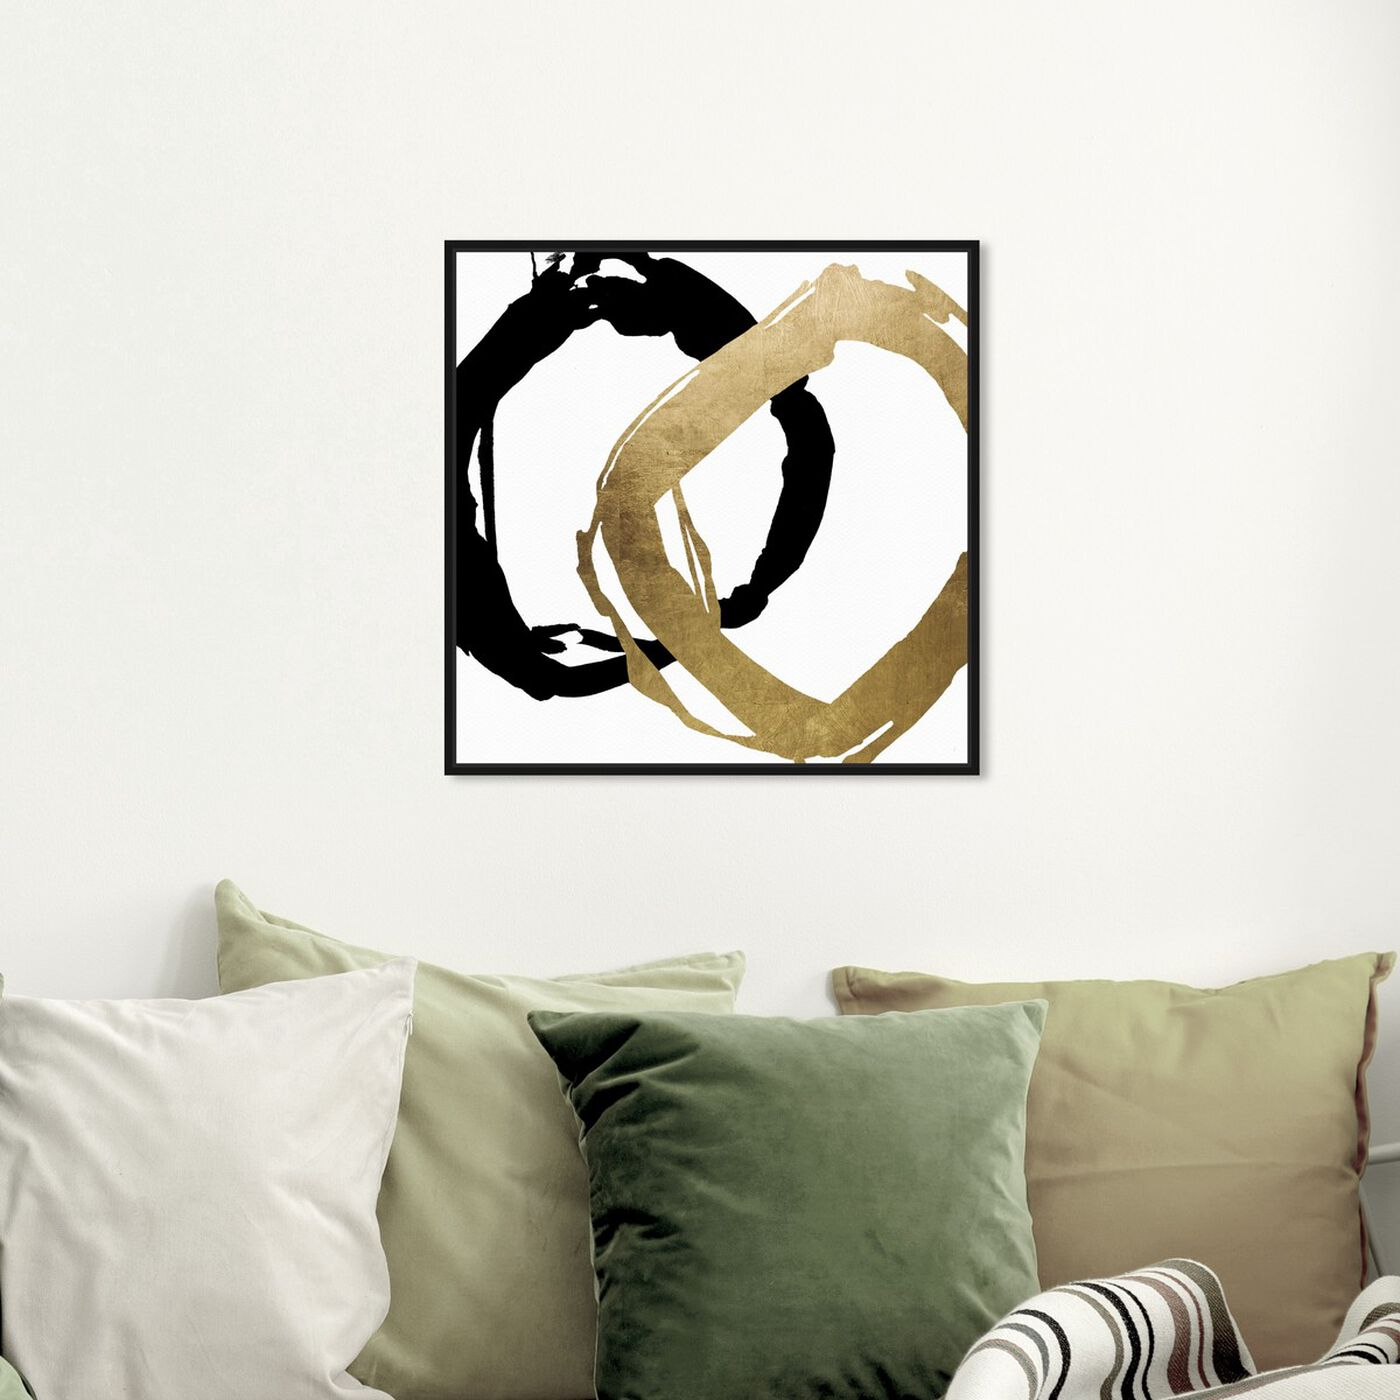 Hanging view of Equal featuring abstract and shapes art.